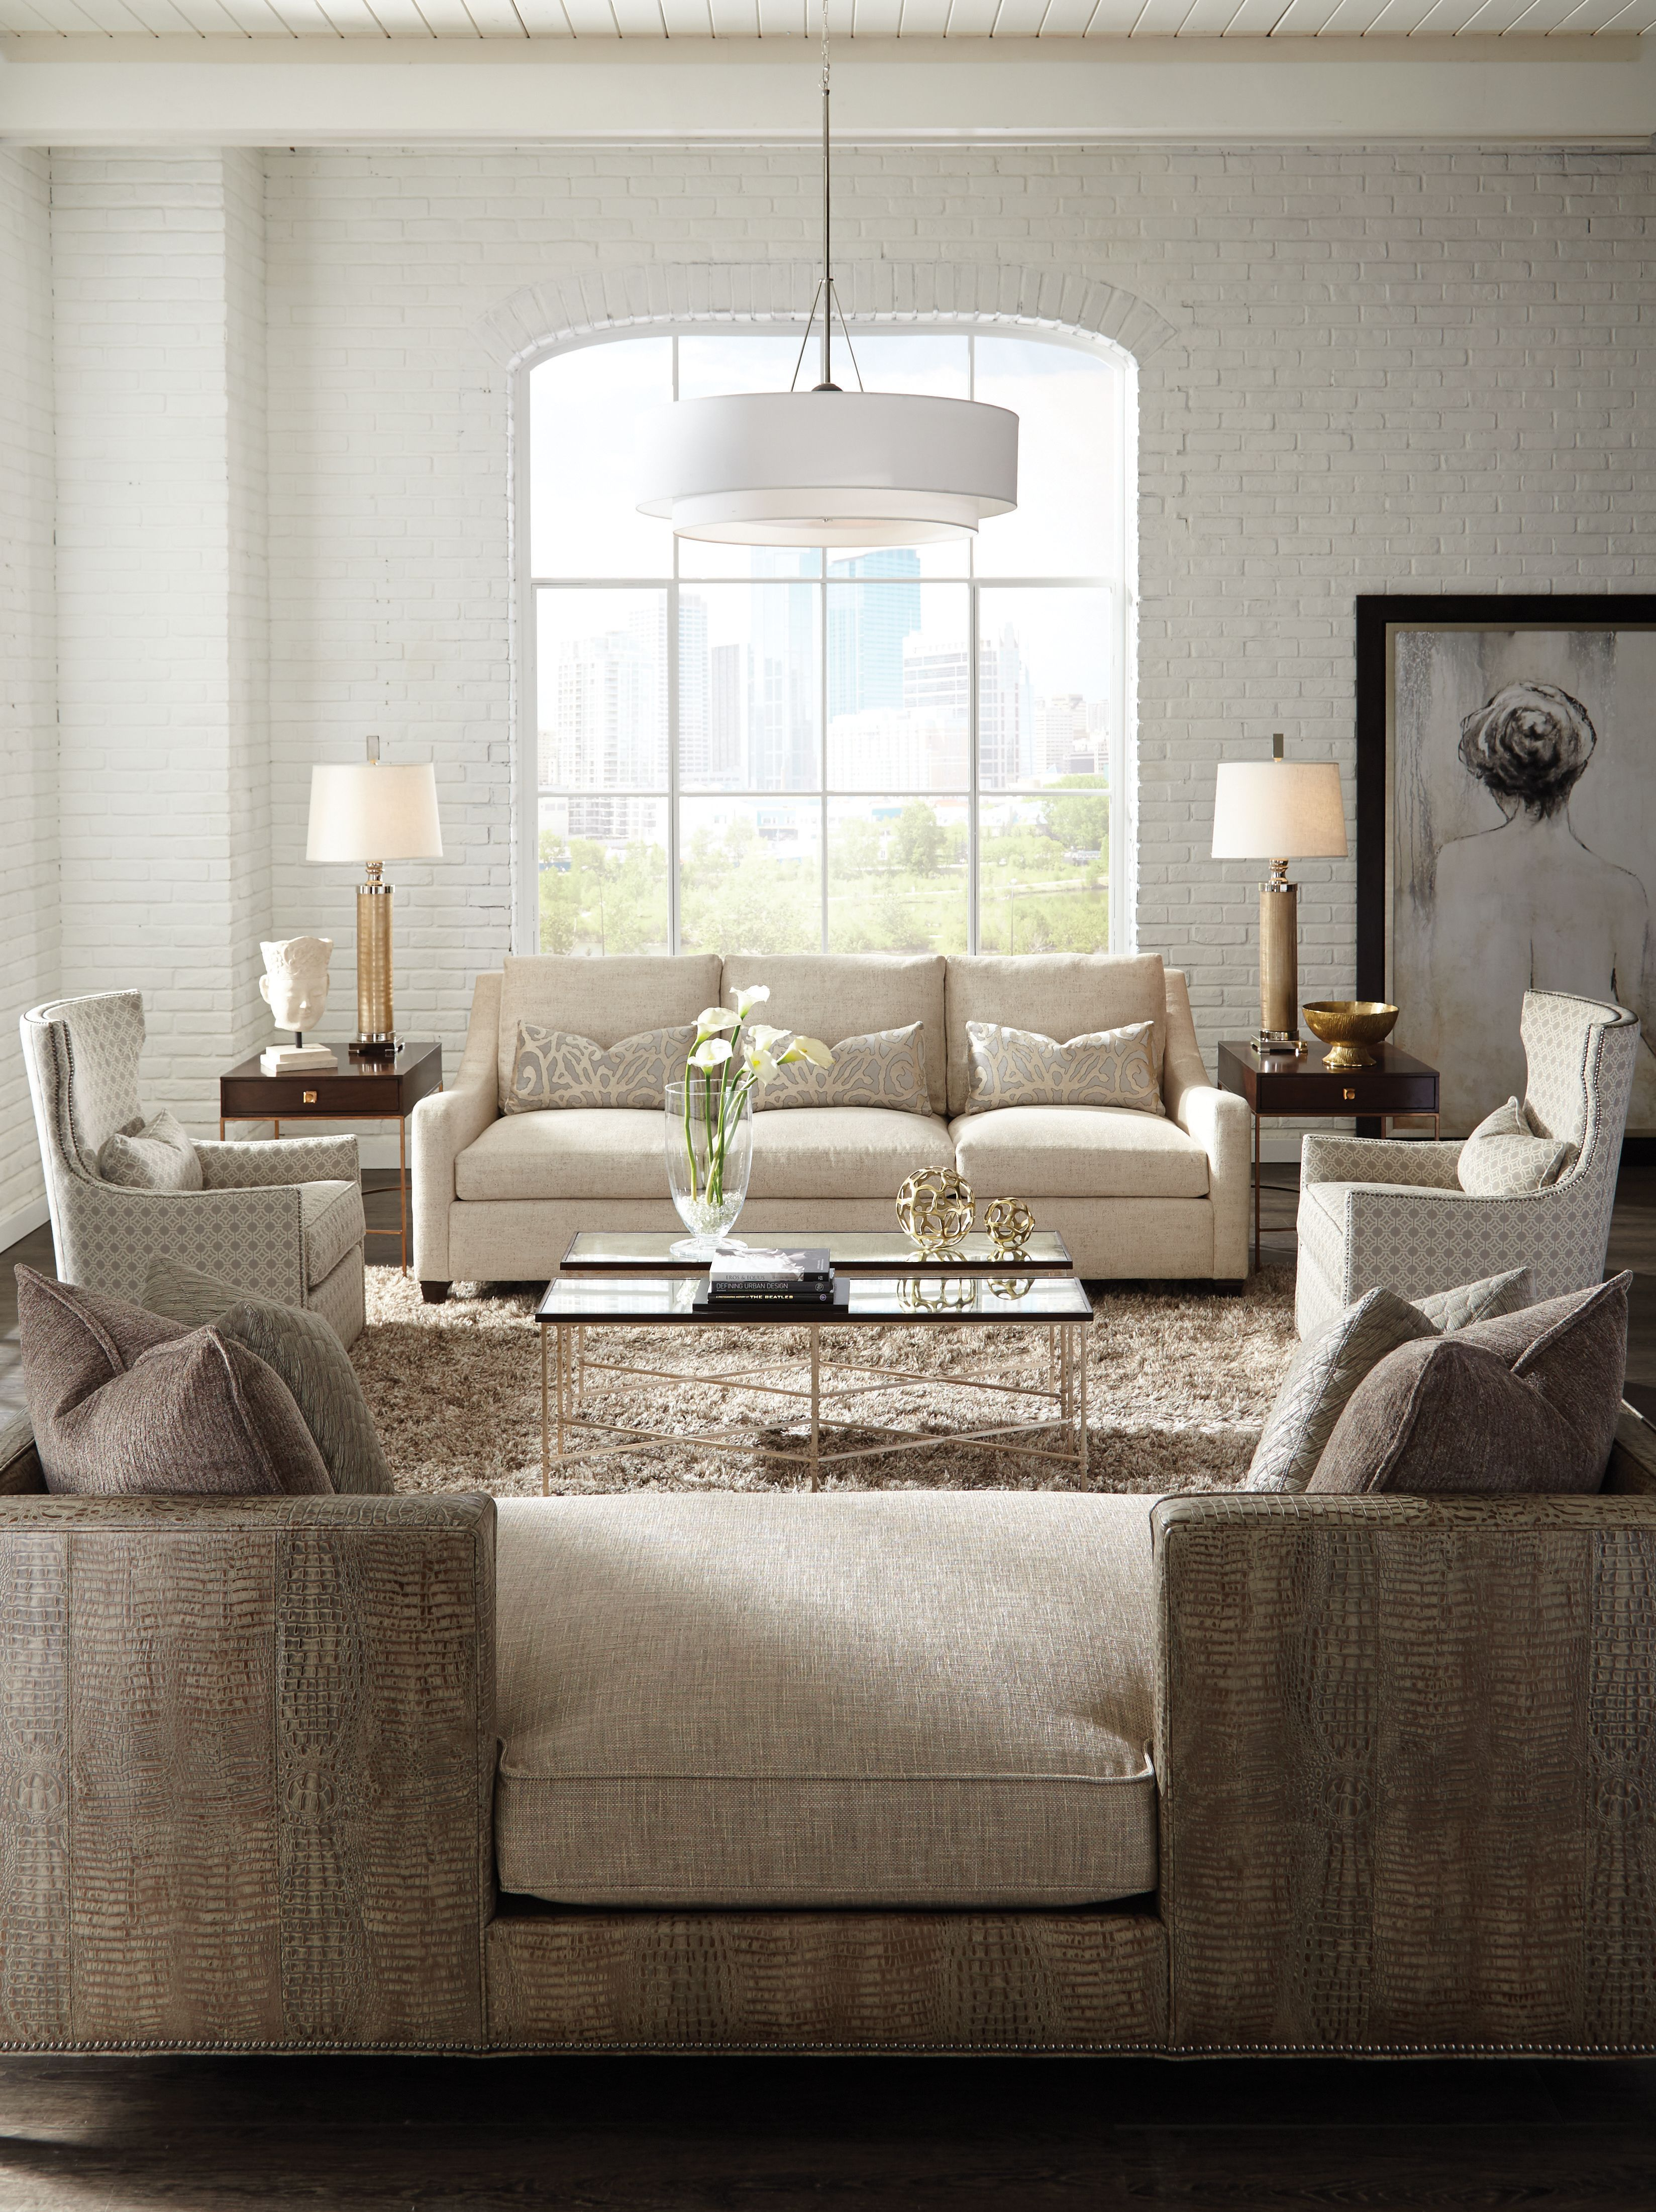 Huntington House Furniture Quality Find A Style That S All Your Own With Huntington House Furniture